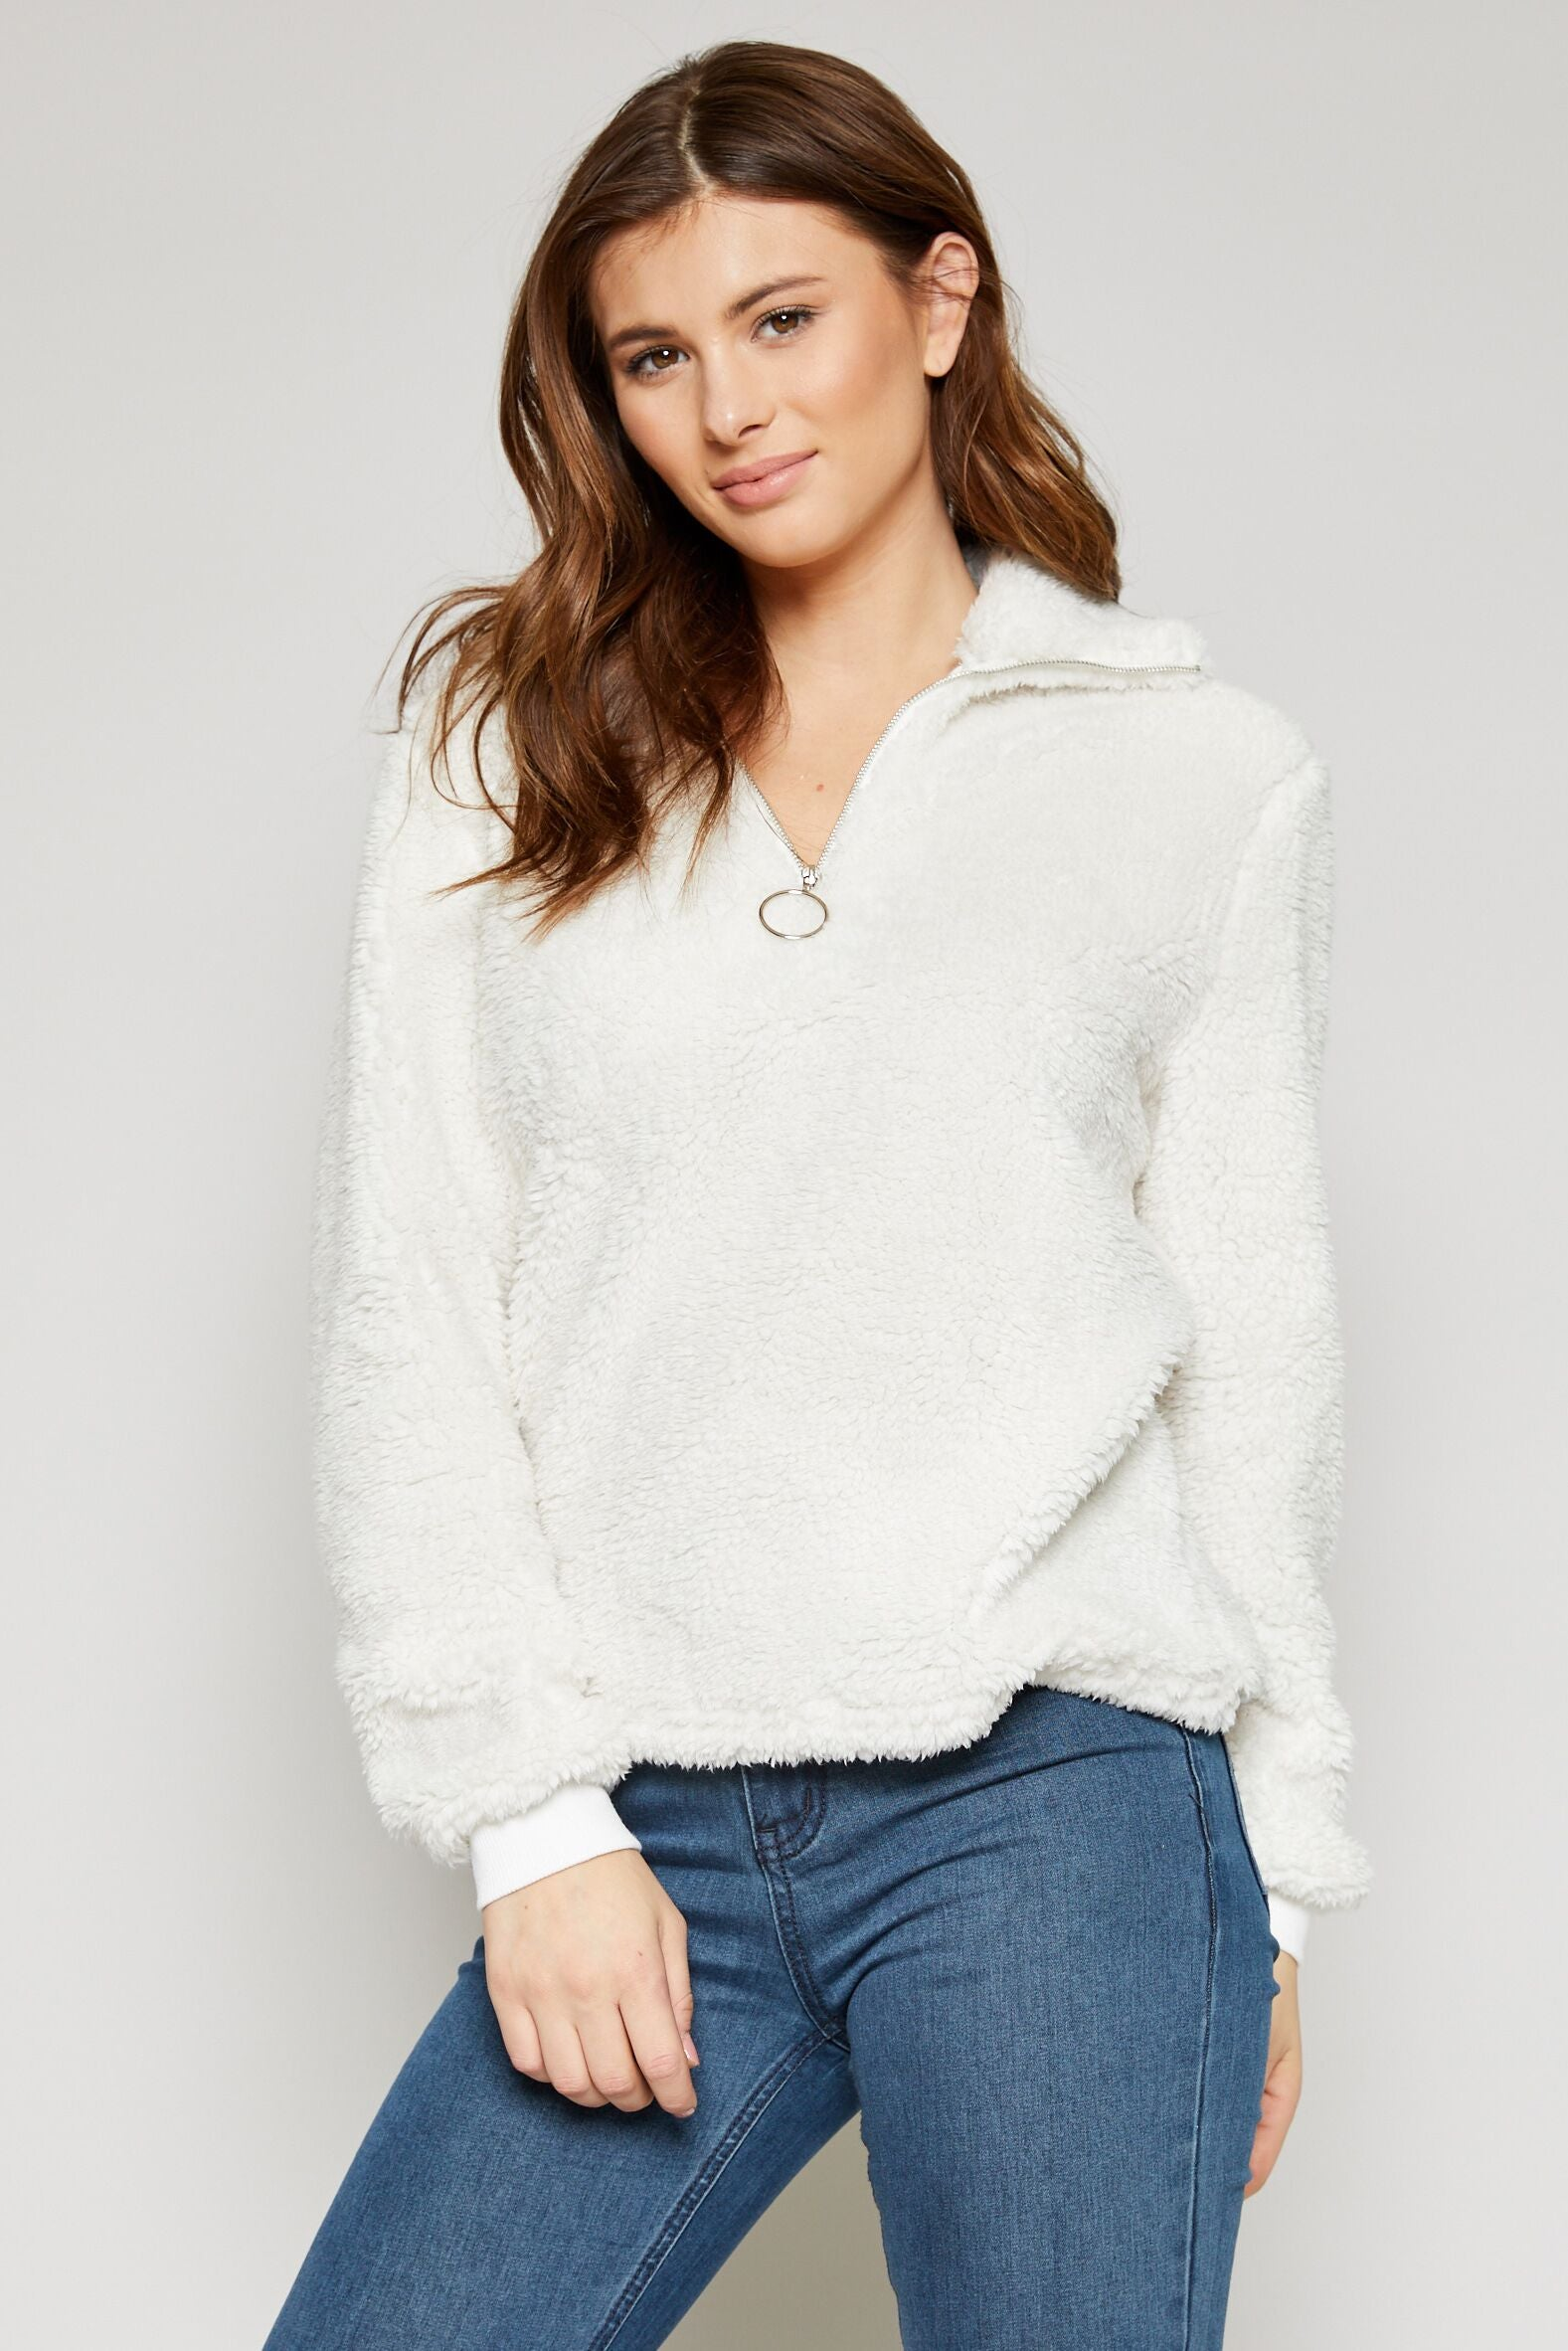 On Cloud Nine Pullover in White